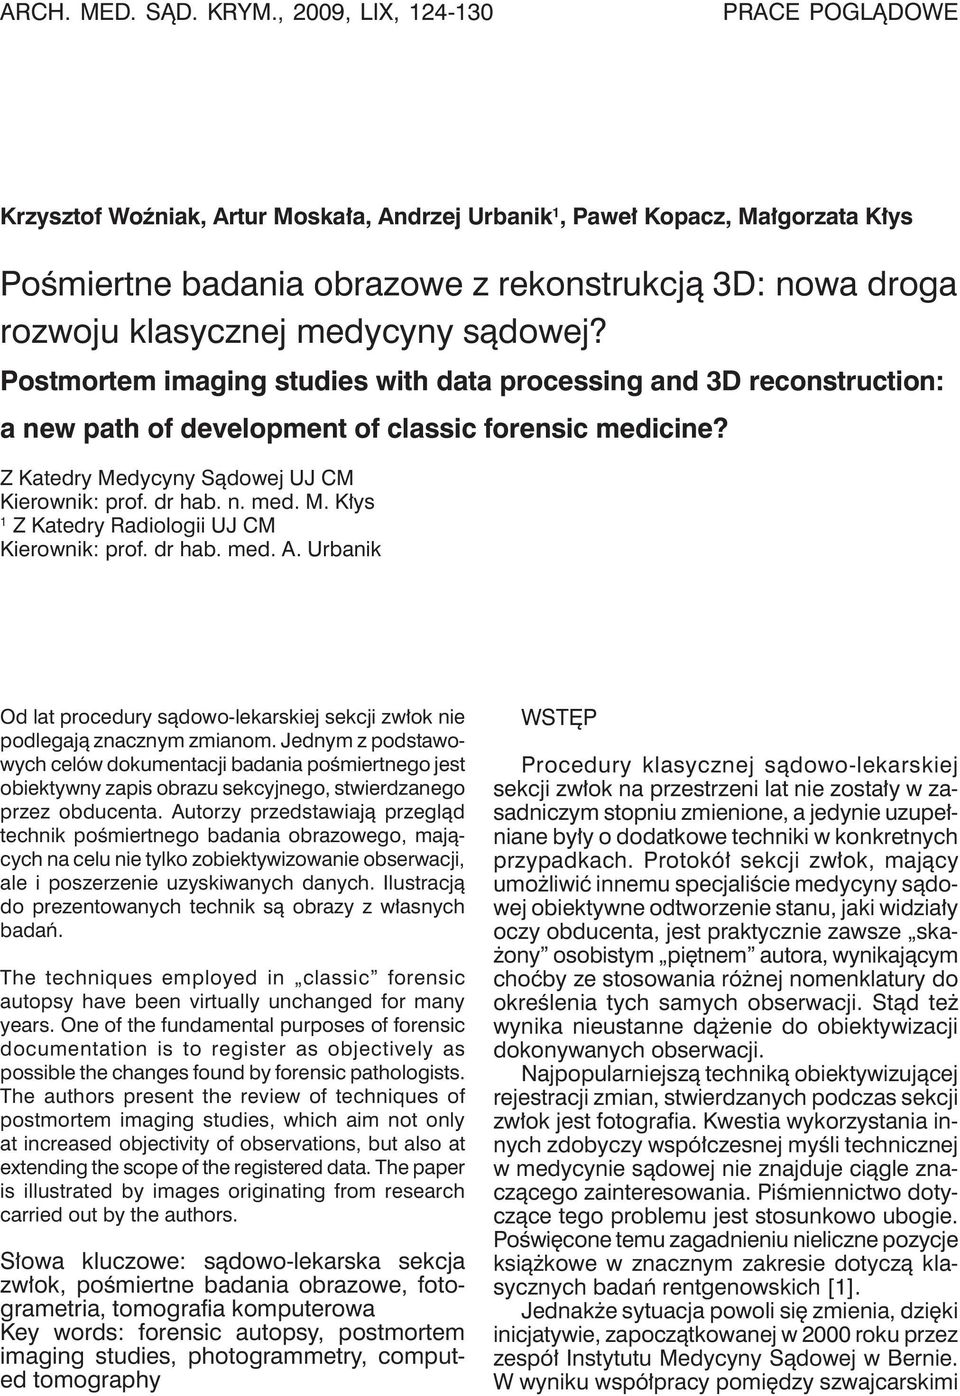 medycyny sądowej? Postmortem imaging studies with data processing and 3D reconstruction: a new path of development of classic forensic medicine? Z Katedry Medycyny Sądowej UJ CM Kierownik: prof.